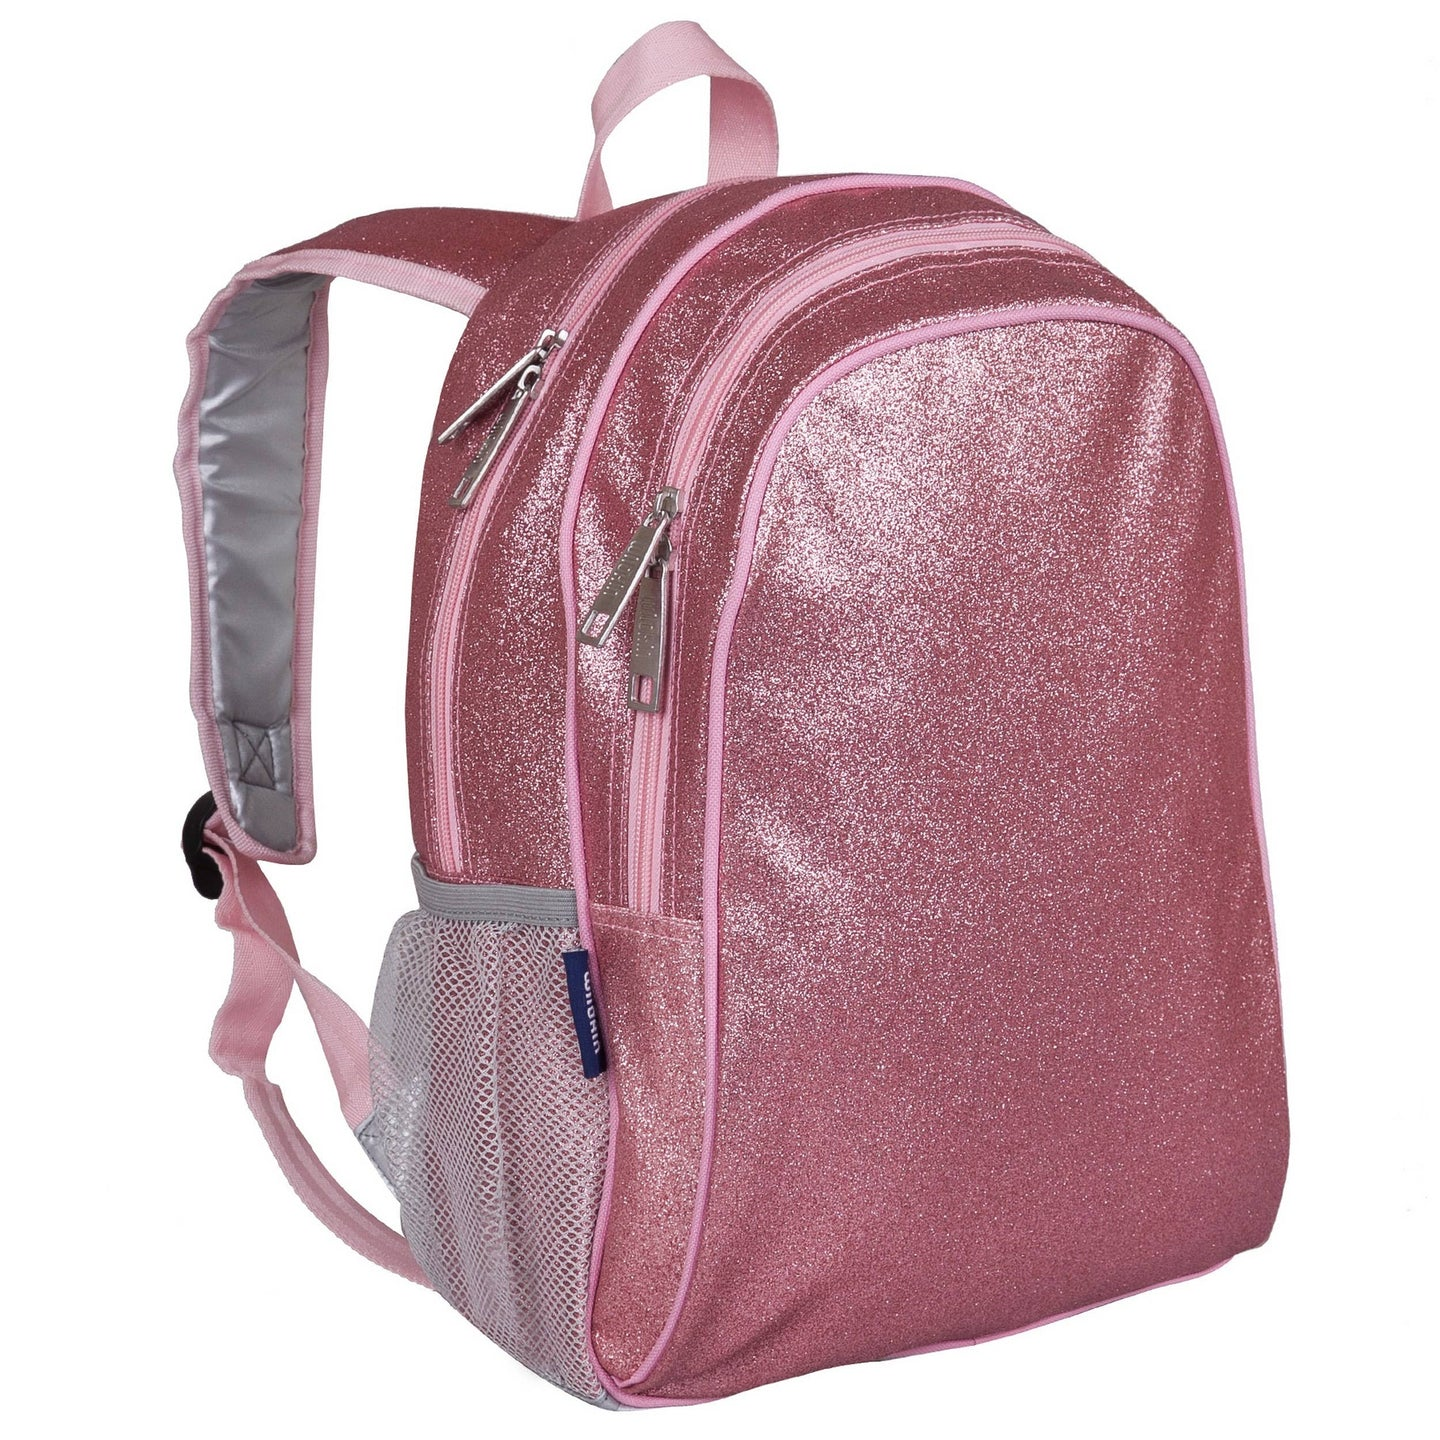 Pink Glitter Backpack - 15 Inch